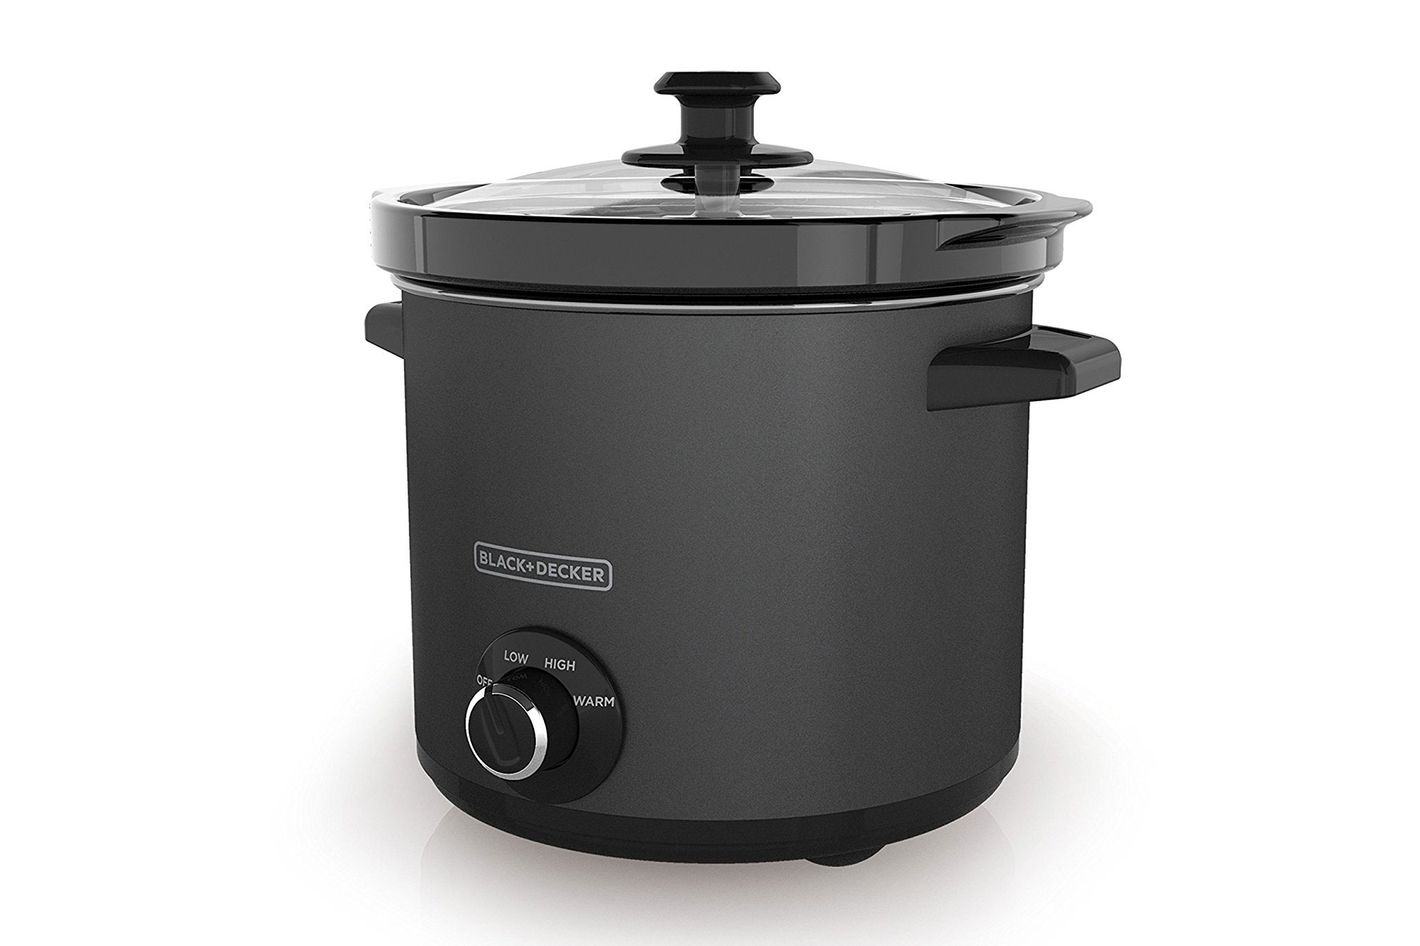 Black & Decker 4-Quart Slow Cooker With Chalkboard Surface